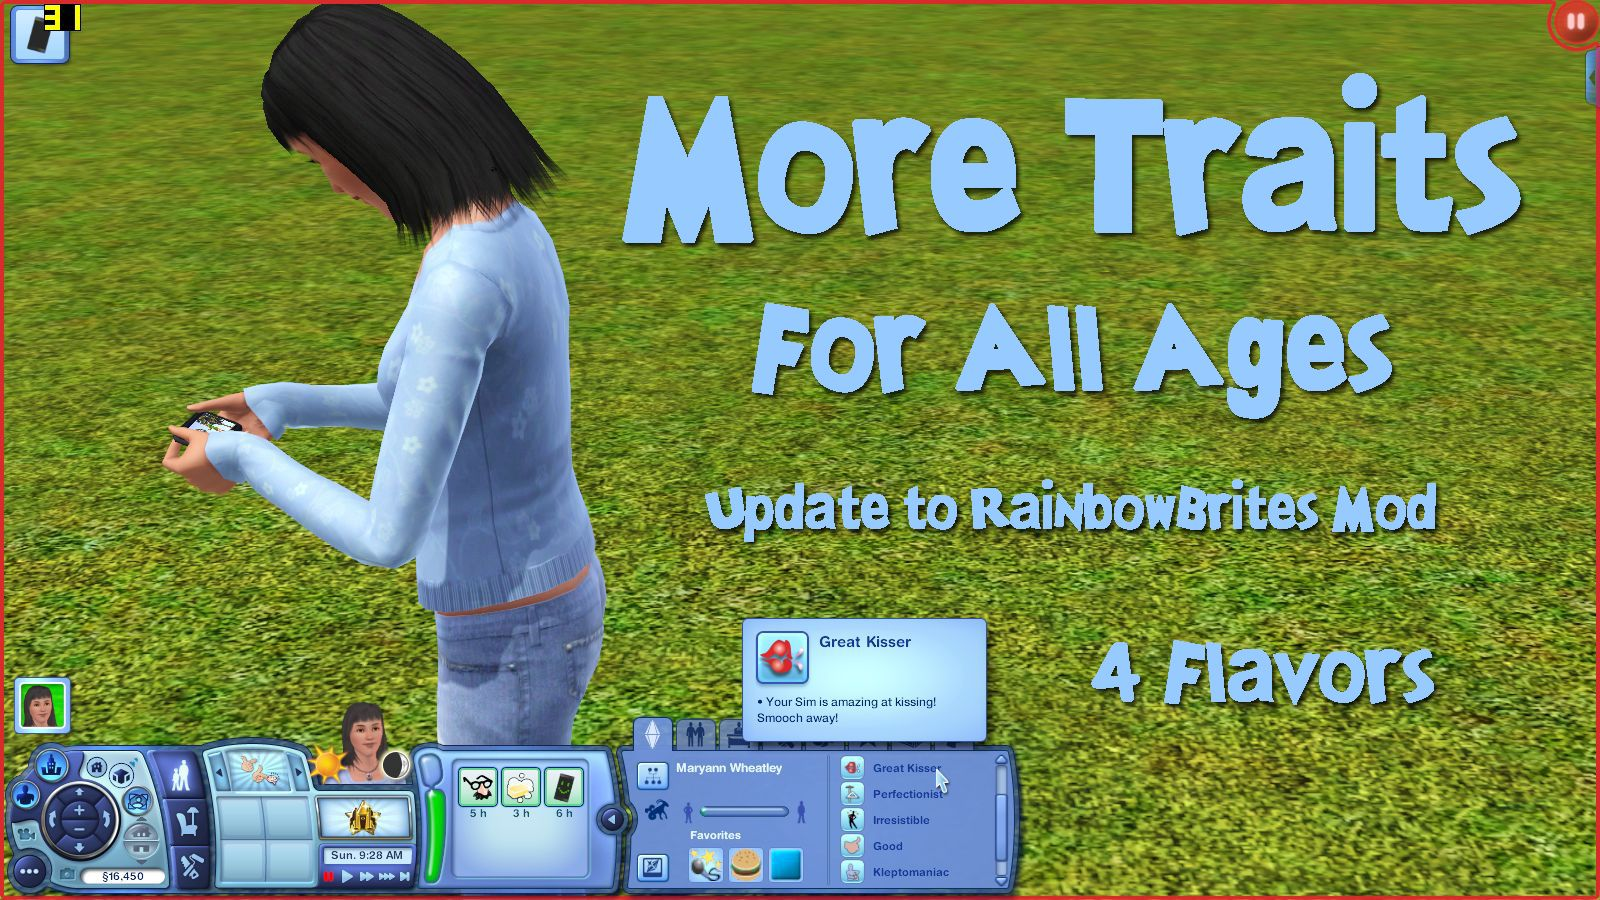 Mod The Sims - More Traits for All Ages